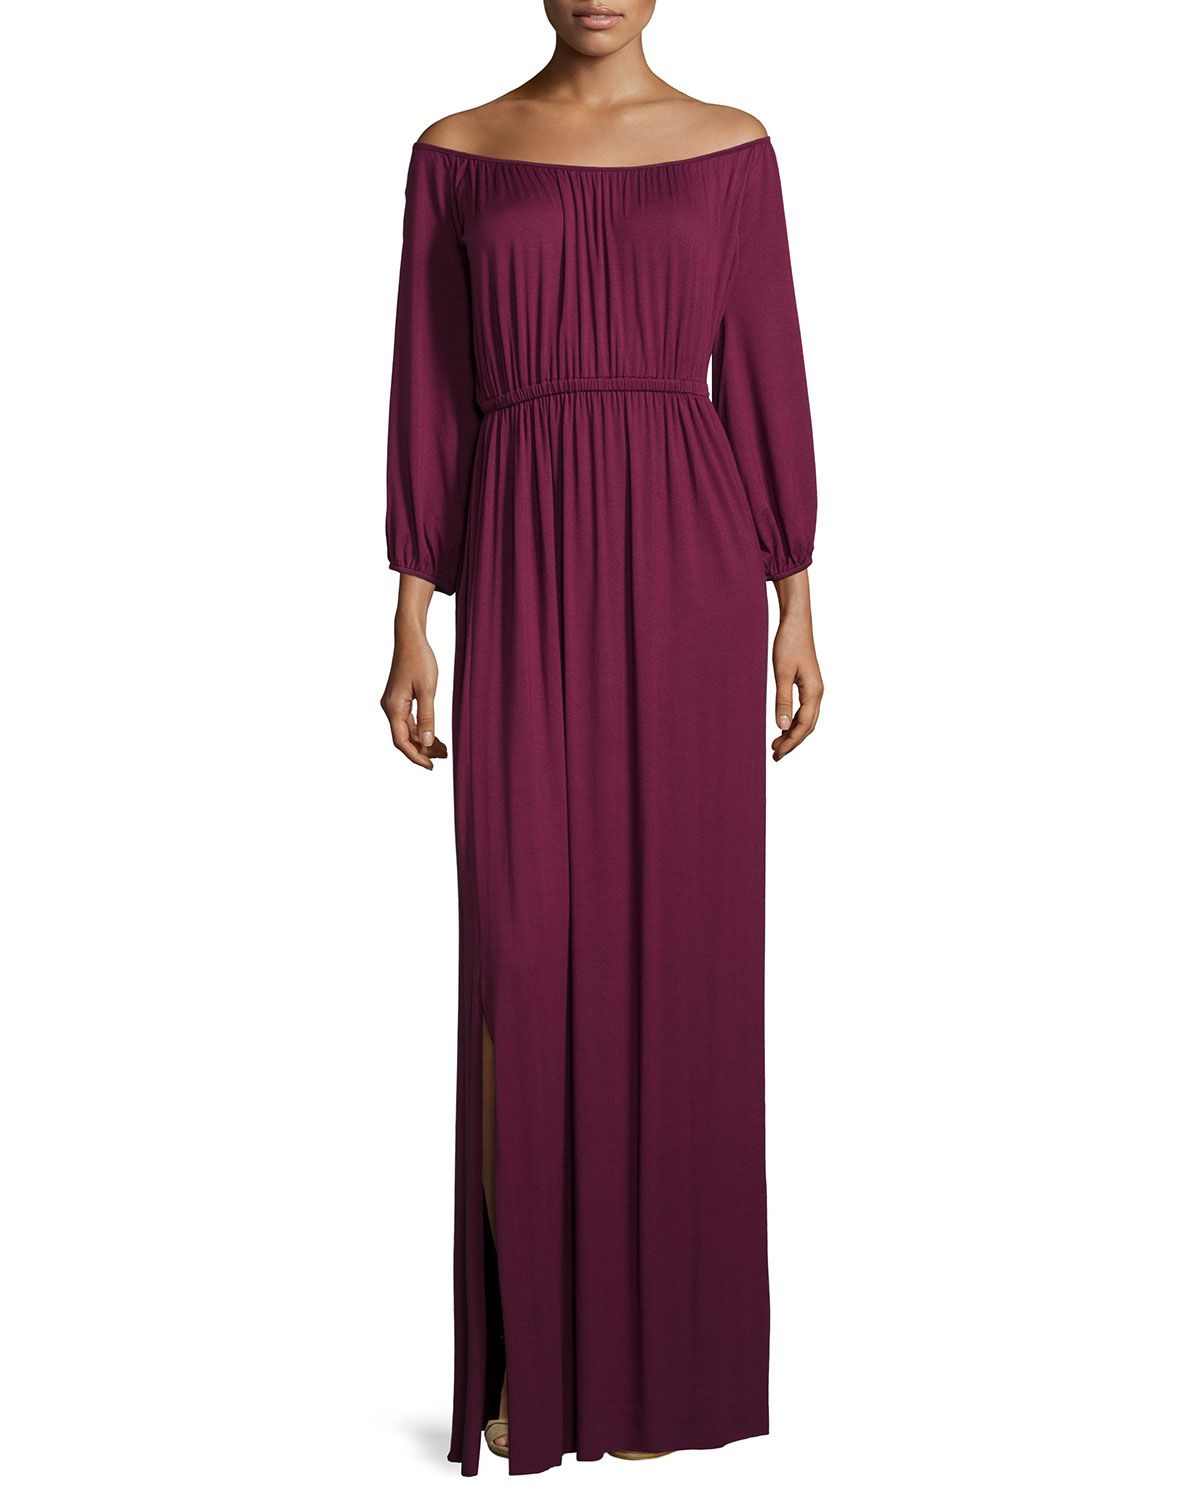 Freya off the shoulder maxi dress cabernet rachel pally freya off the shoulder maxi dress cabernet rachel pally rachel pallybridesmaid dressesmaxi dressesneiman marcusmaxisshoulderclotheswomens fashion ombrellifo Choice Image